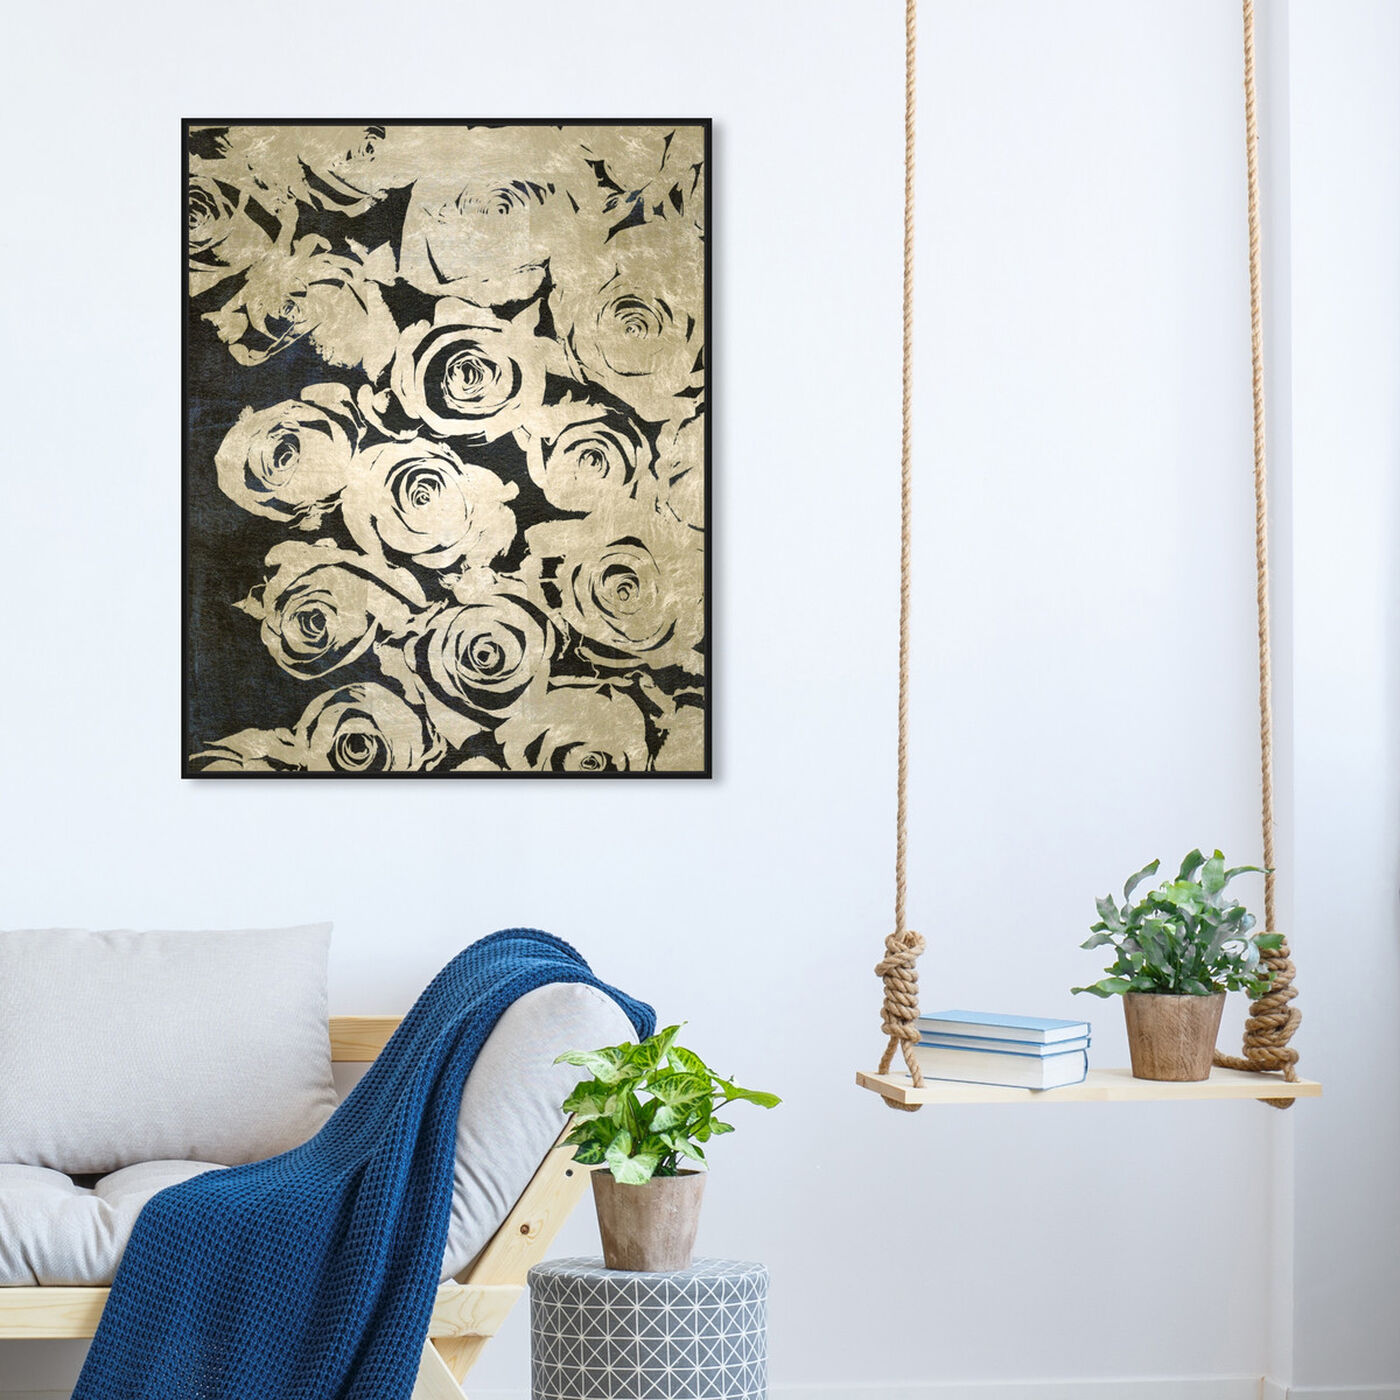 Hanging view of Dark Rose I featuring floral and botanical and florals art.